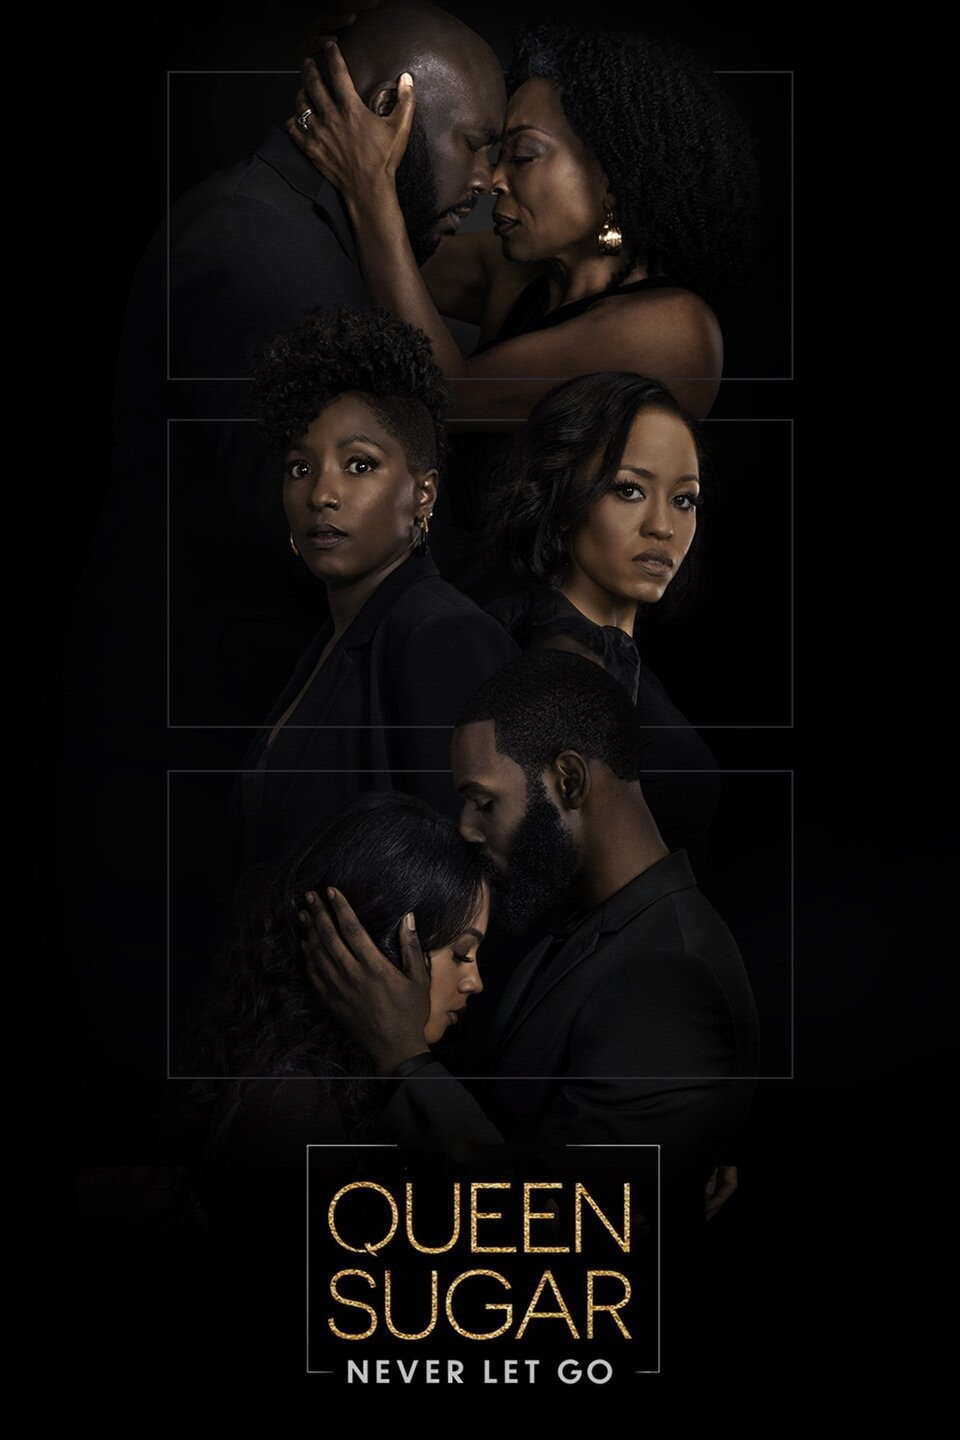 Queen Sugar Season 5 Episode 1 (S05 E01) Subtitles DOWNLOAD